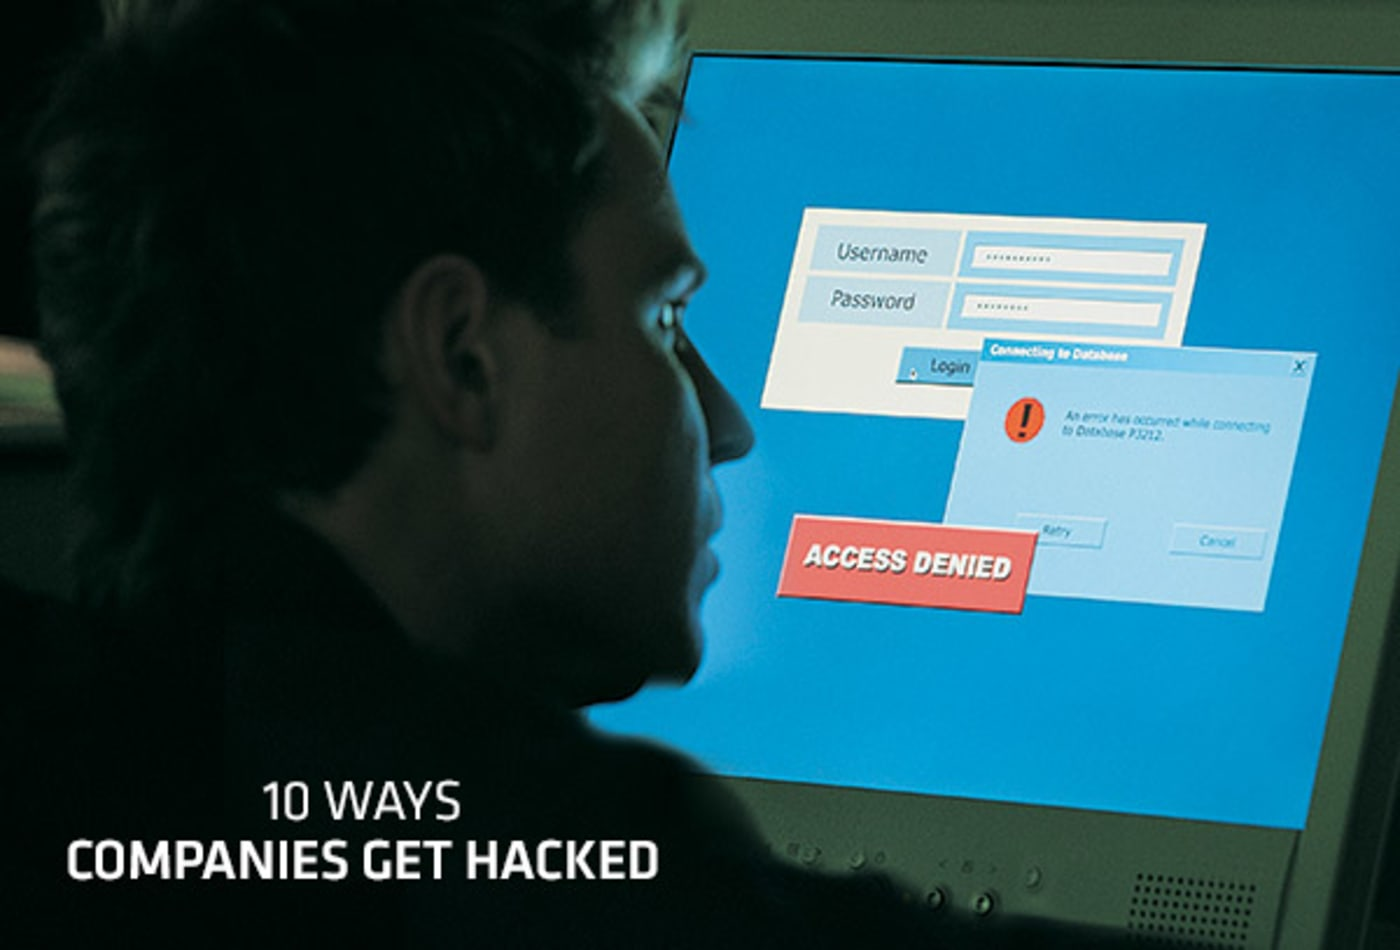 10-Most-Hackers-Computer-Systems-cover2.jpg